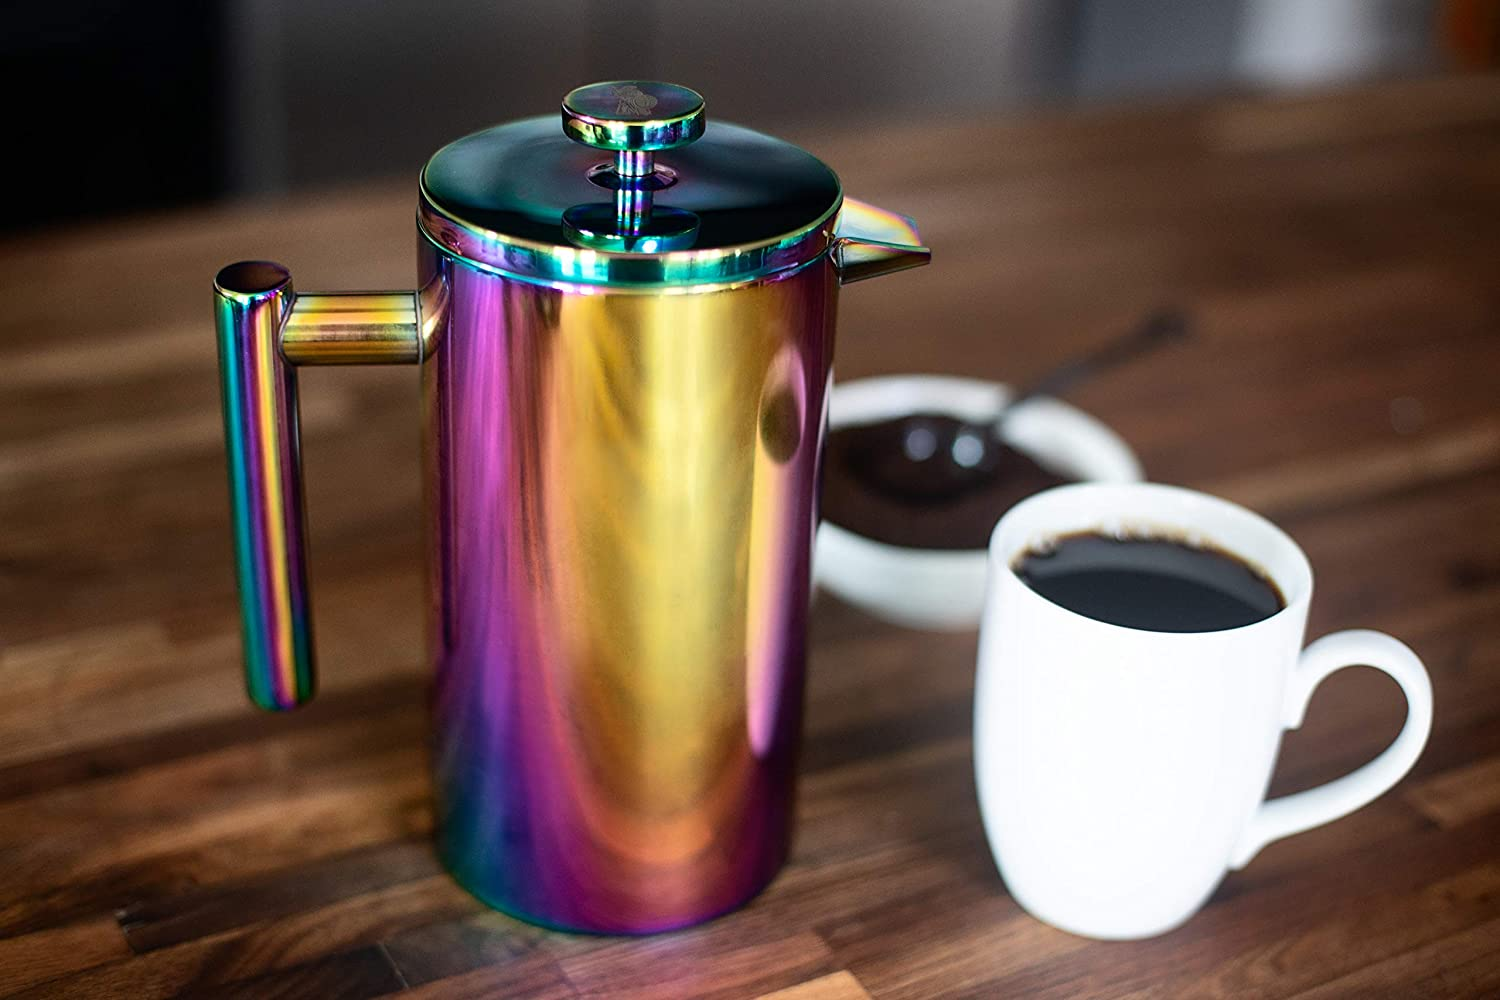 French Press Coffee Maker, Large Rainbow Iridescent Stainless Steel 34oz Double-Wall Insulated Tea Pot, Sustainable Cafetiere Kit Scoop, 2 Extra Filters, Great for Cold Brew, Travel Office Camping